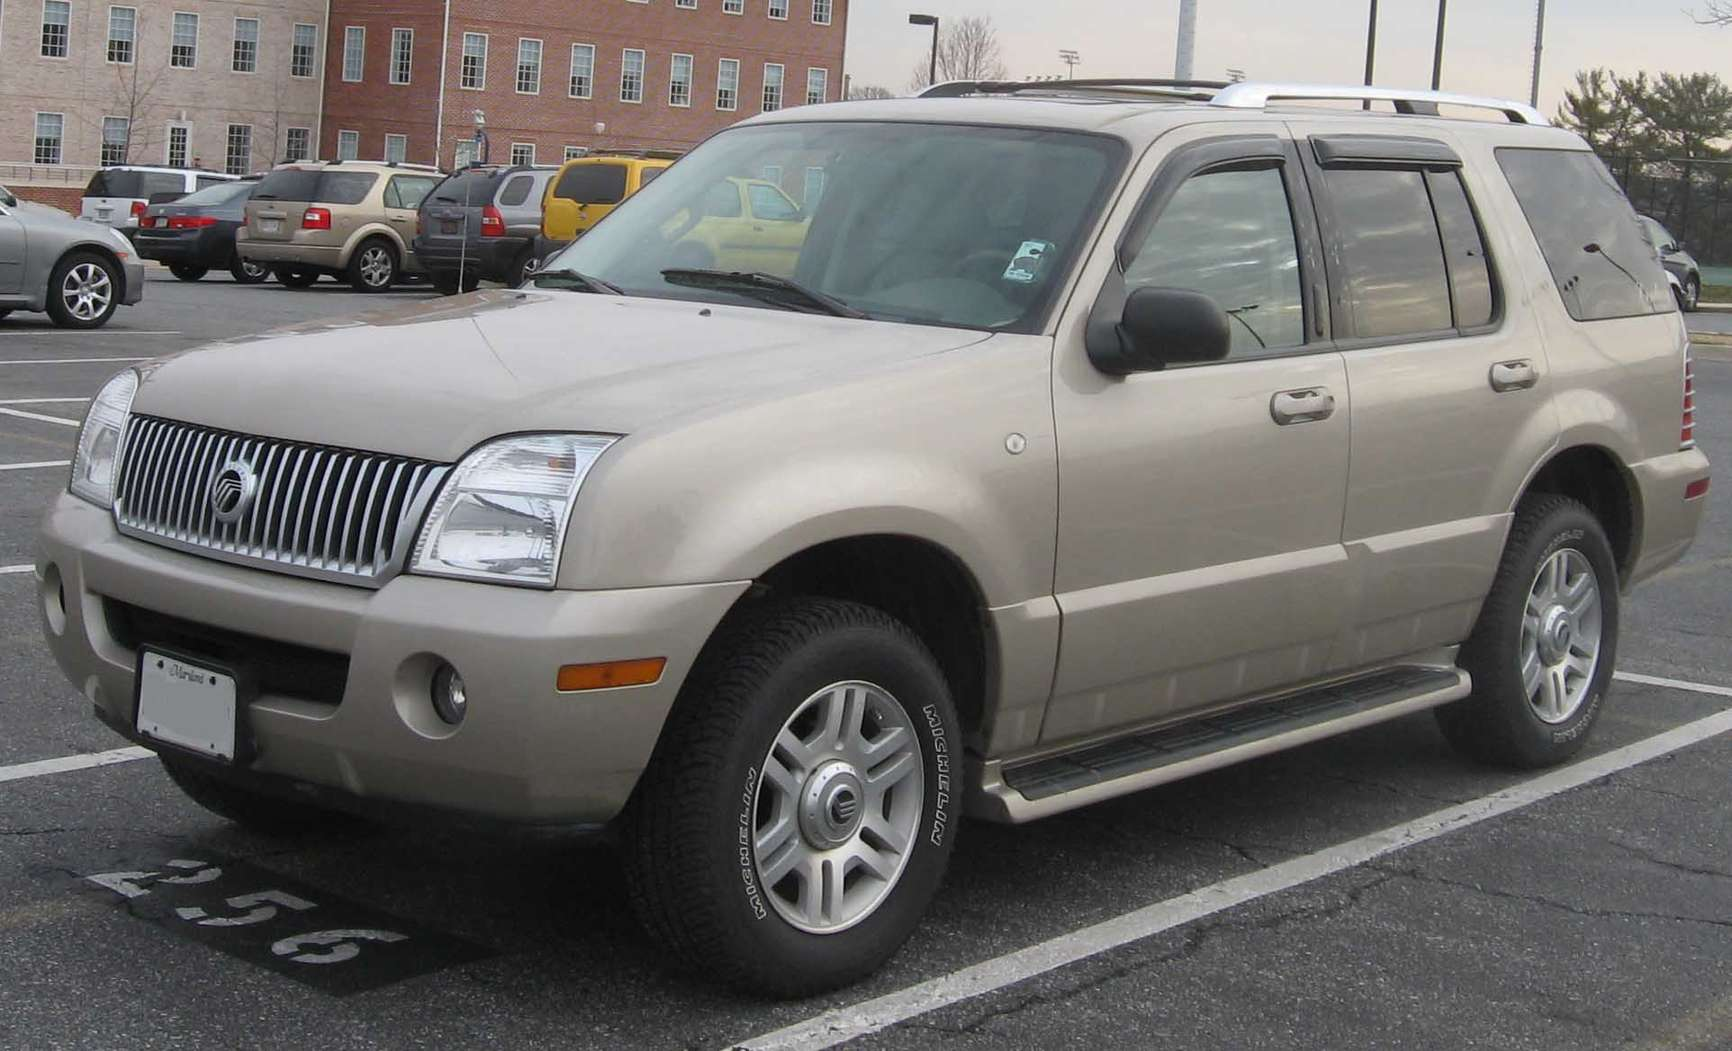 Mercury Mountaineer #7436205